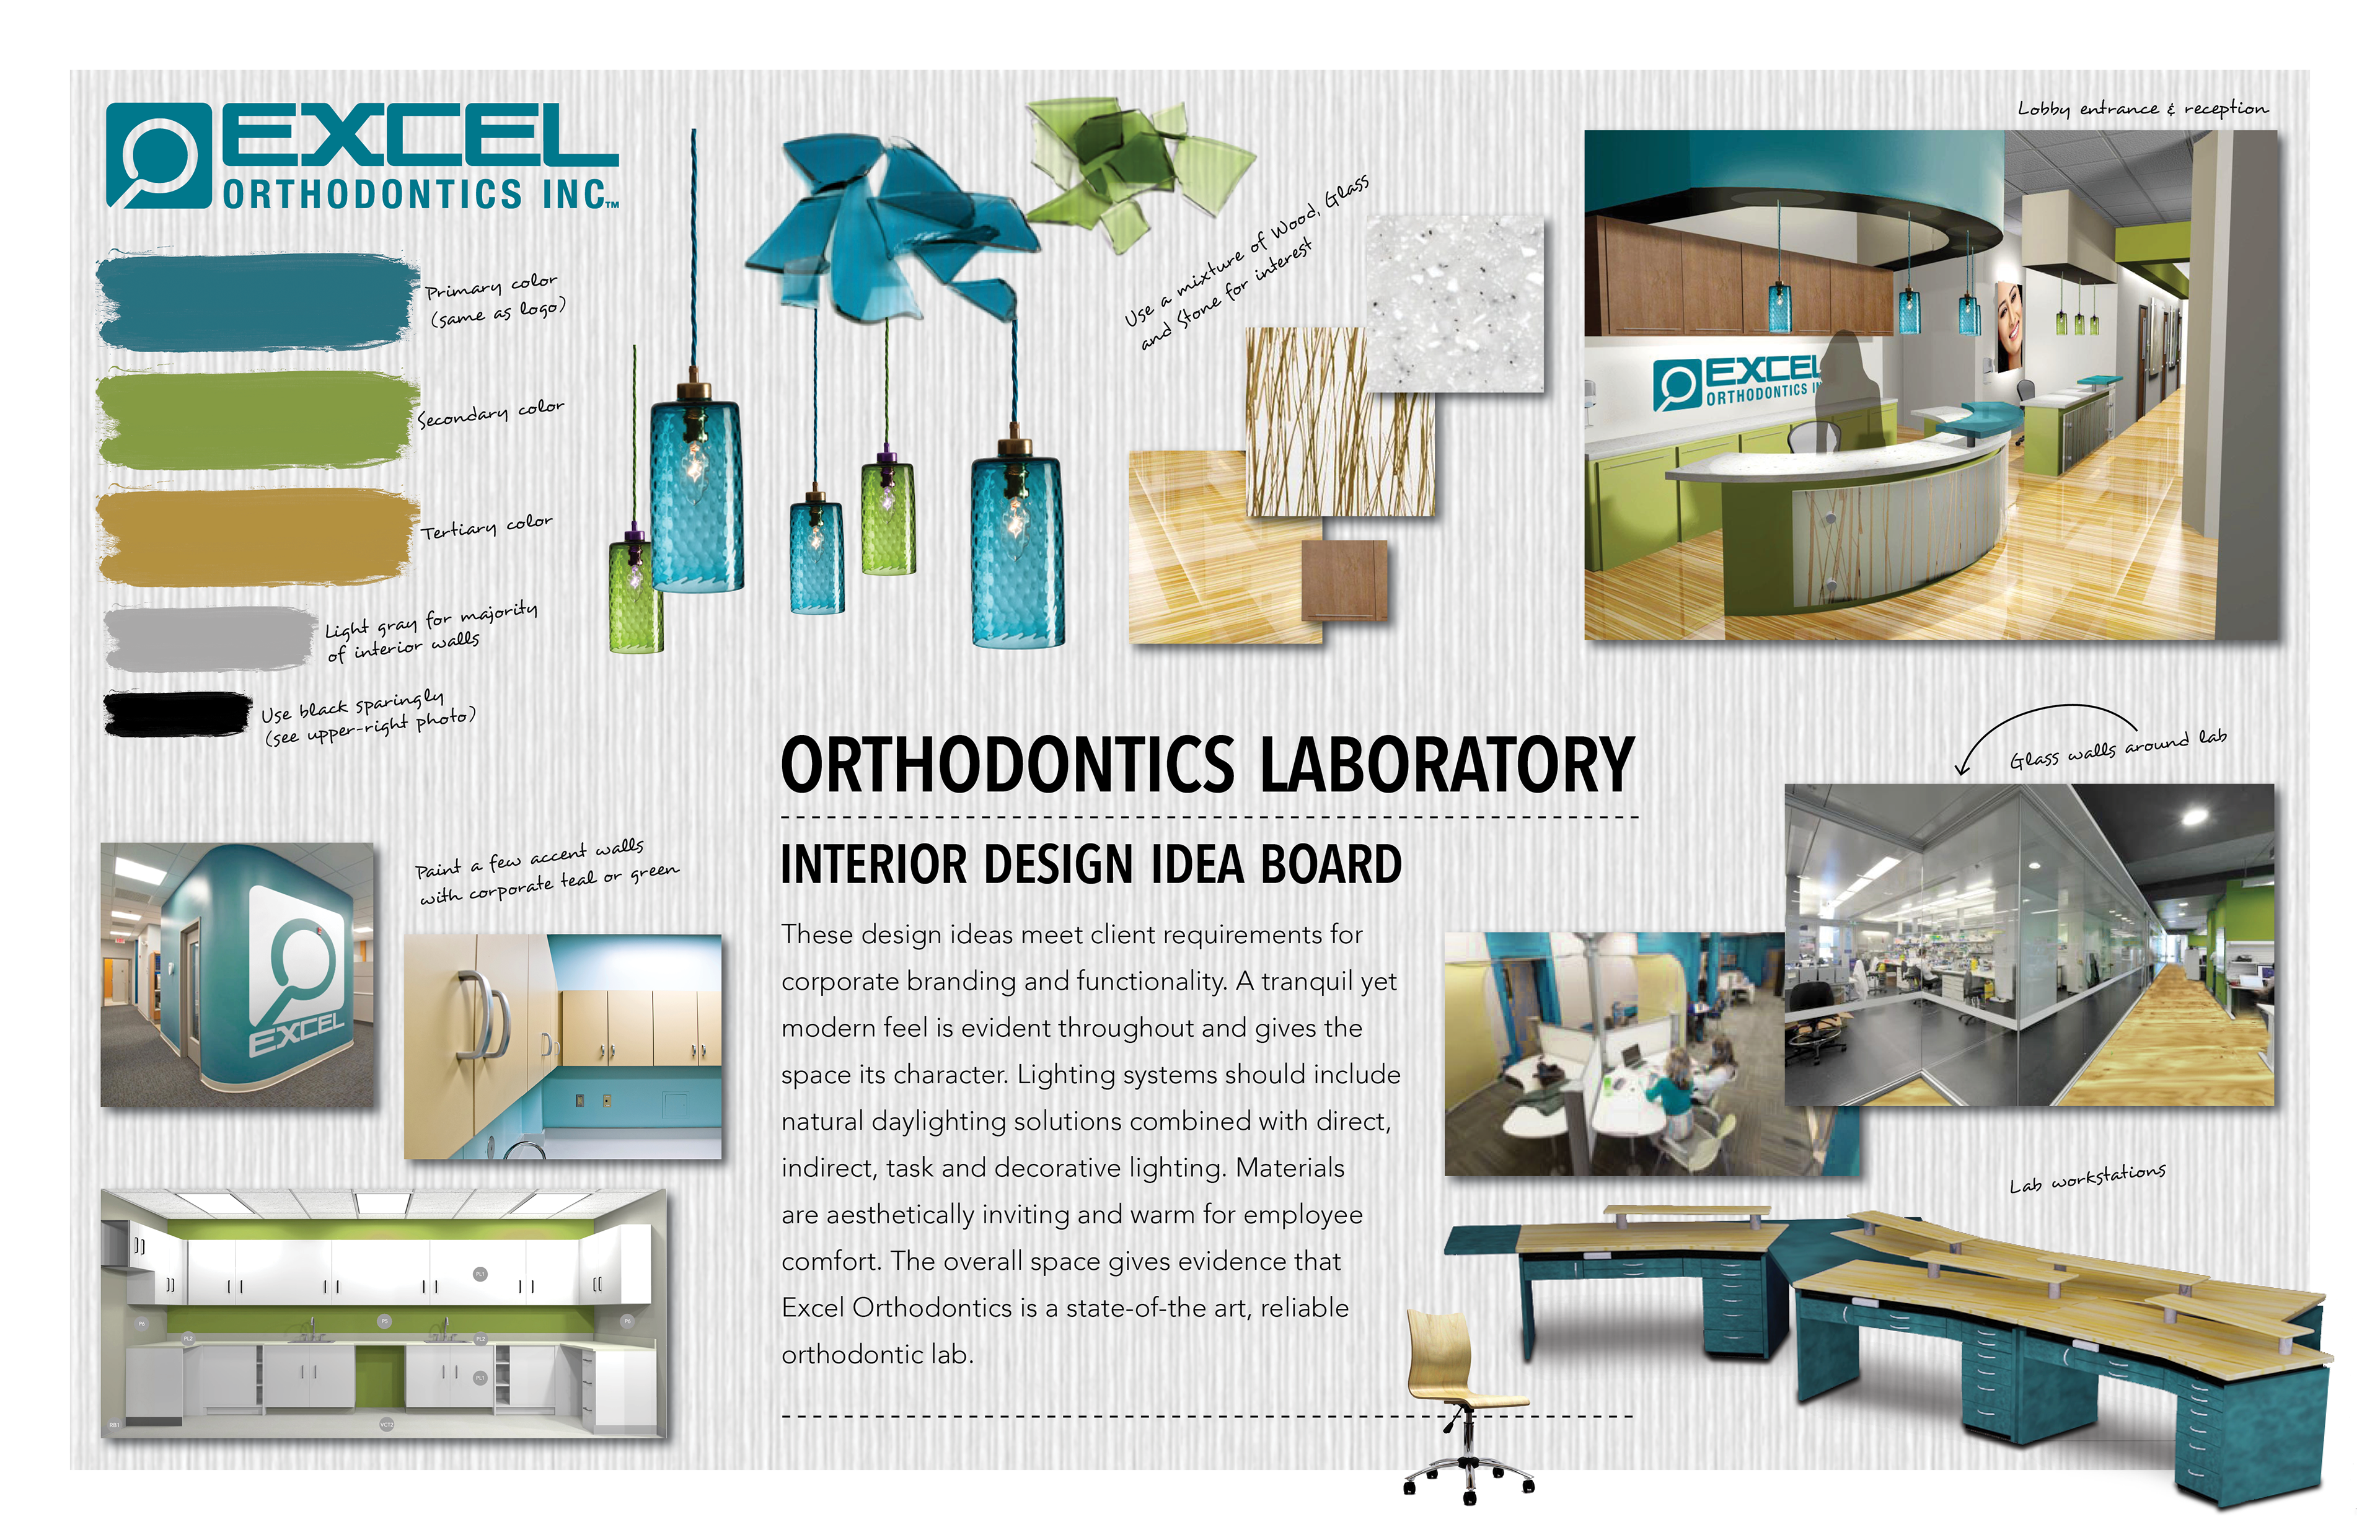 interior design idea board for branding an orthodontics laboratory just being built - Interior Design Idea Board